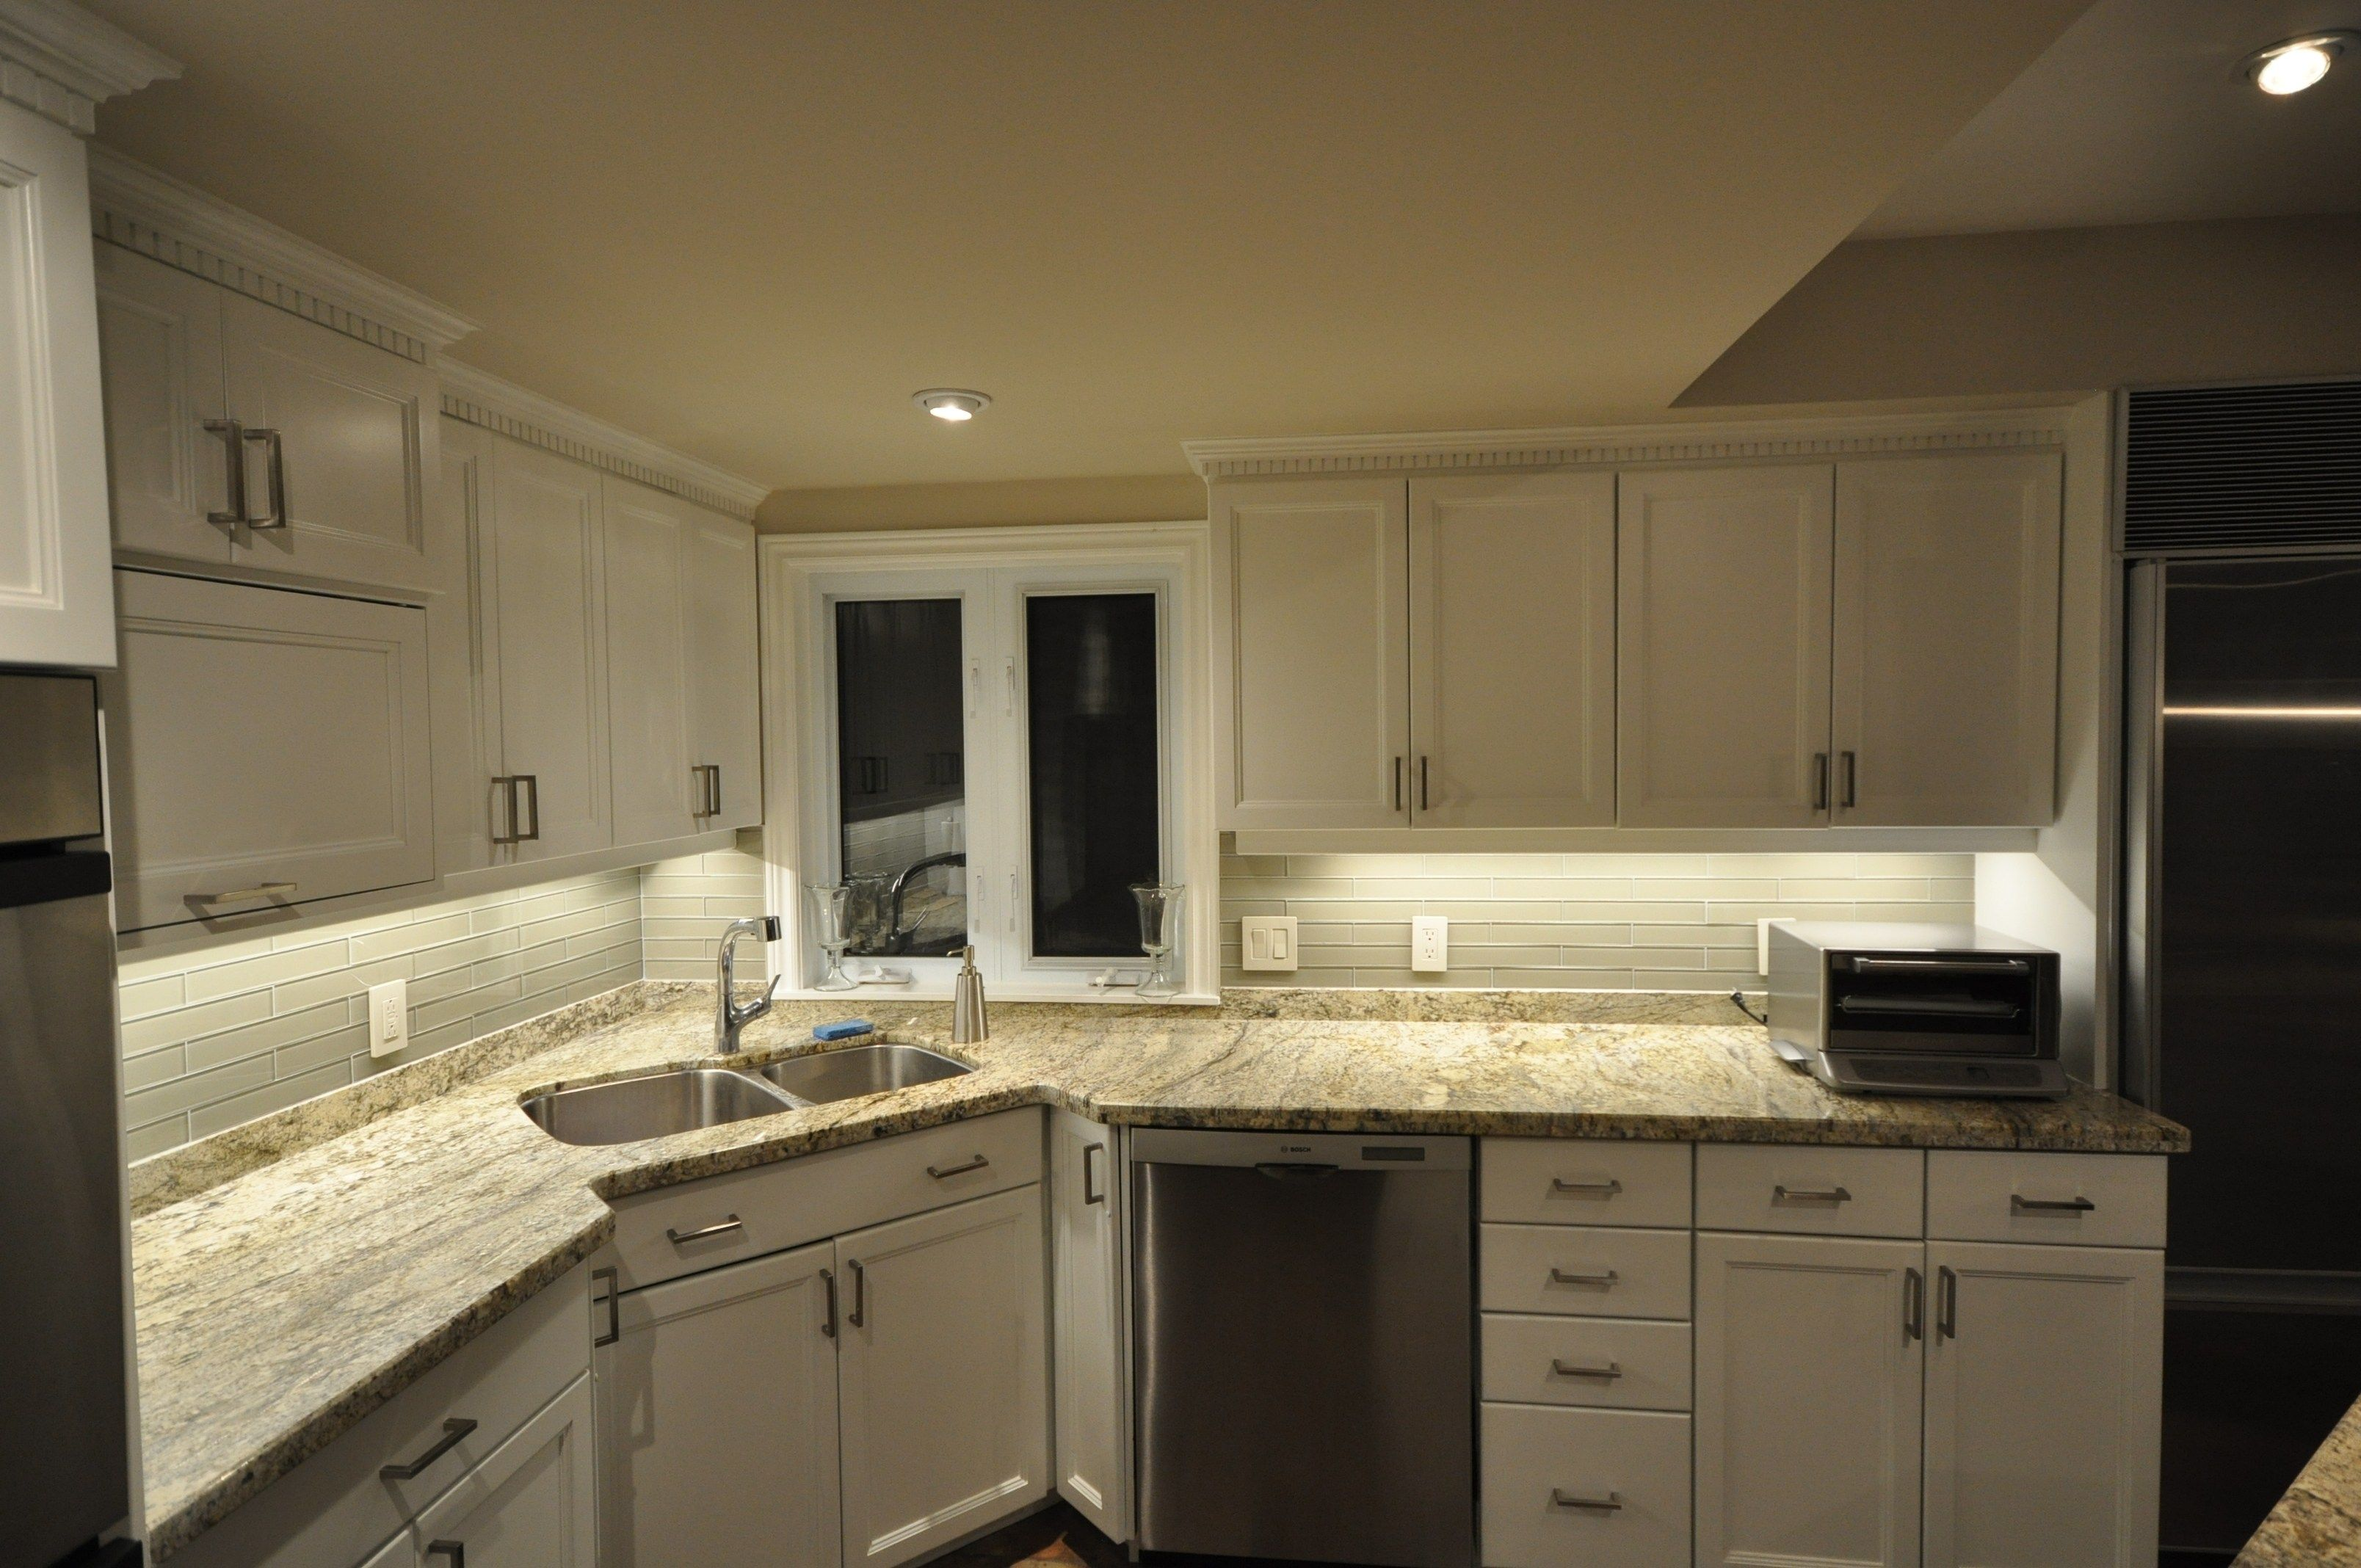 Lighting Under Cabinets Kitchen Kitchen Under Cabinet Lighting Light Kitchen Cabinets Strip Lighting Kitchen